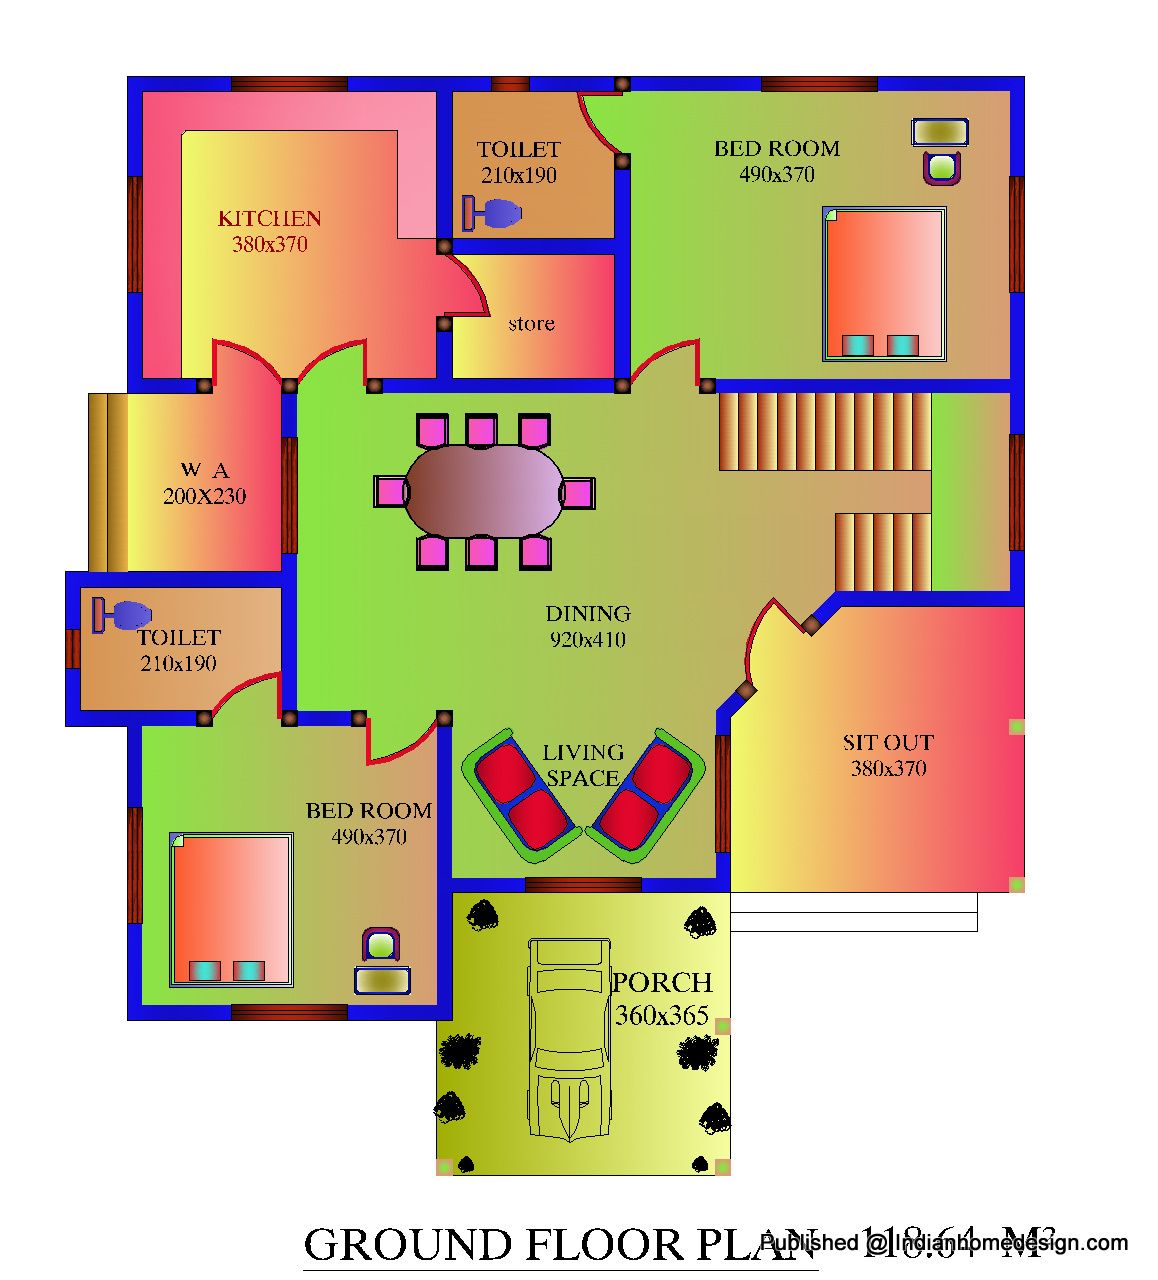 Sq Ft Bedroom House Plans on 1600 sq ft 4 bedroom house plans, 5000 square foot house plans, 1700 sq ft 4 bedroom house plans,